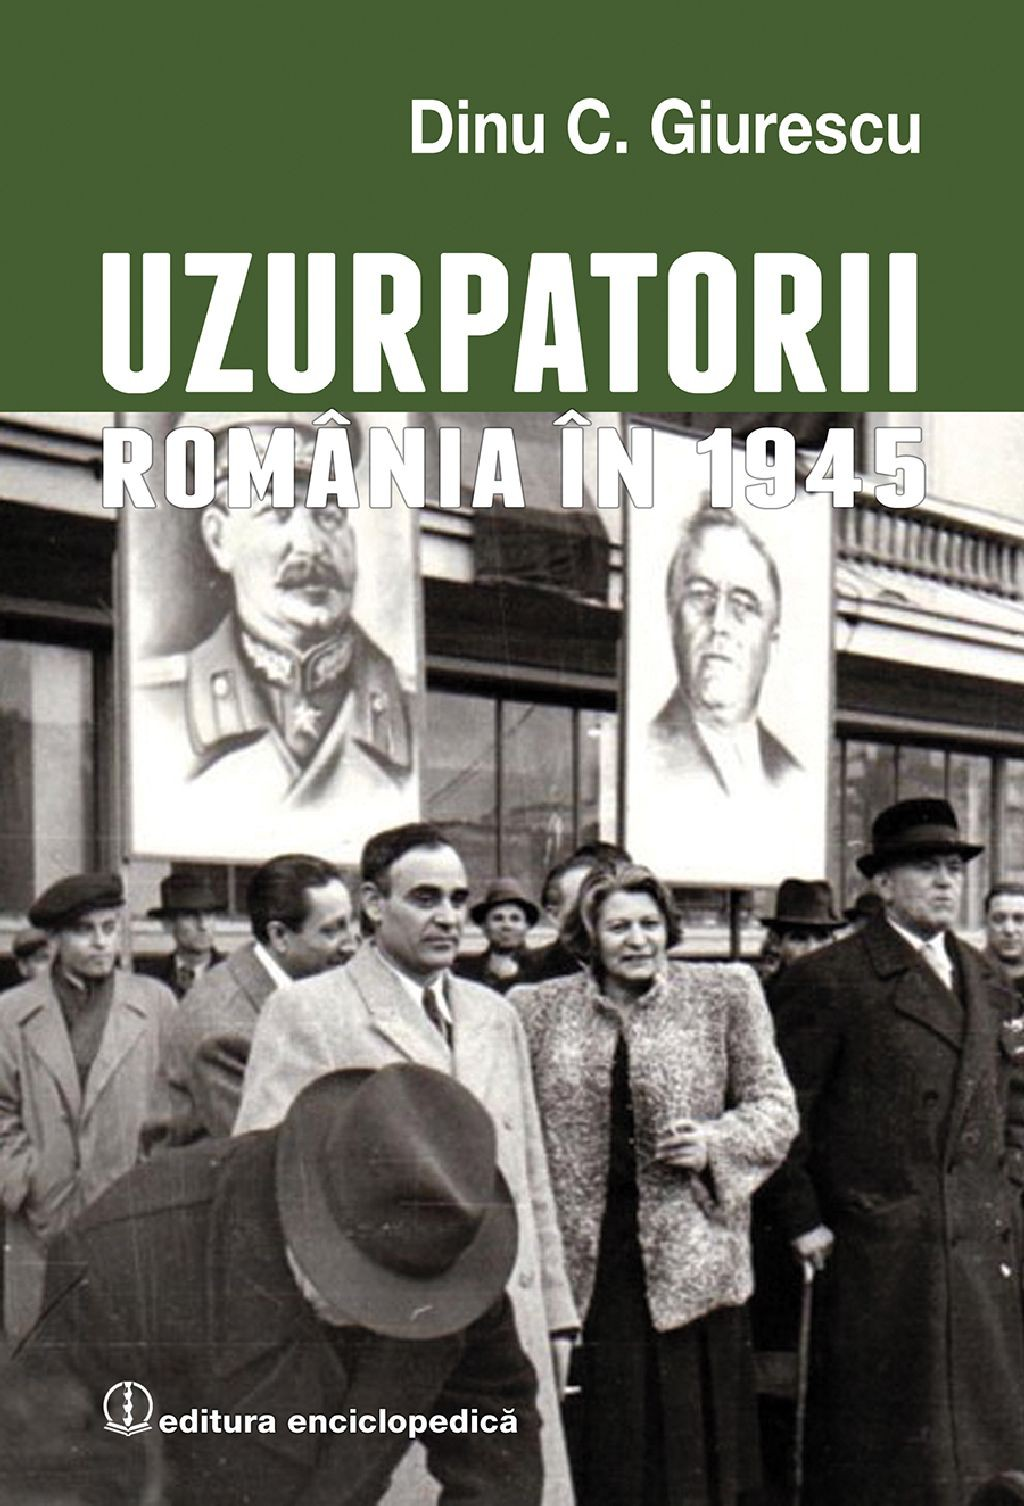 uzurpatorii-romania-in-1945_1_fullsize